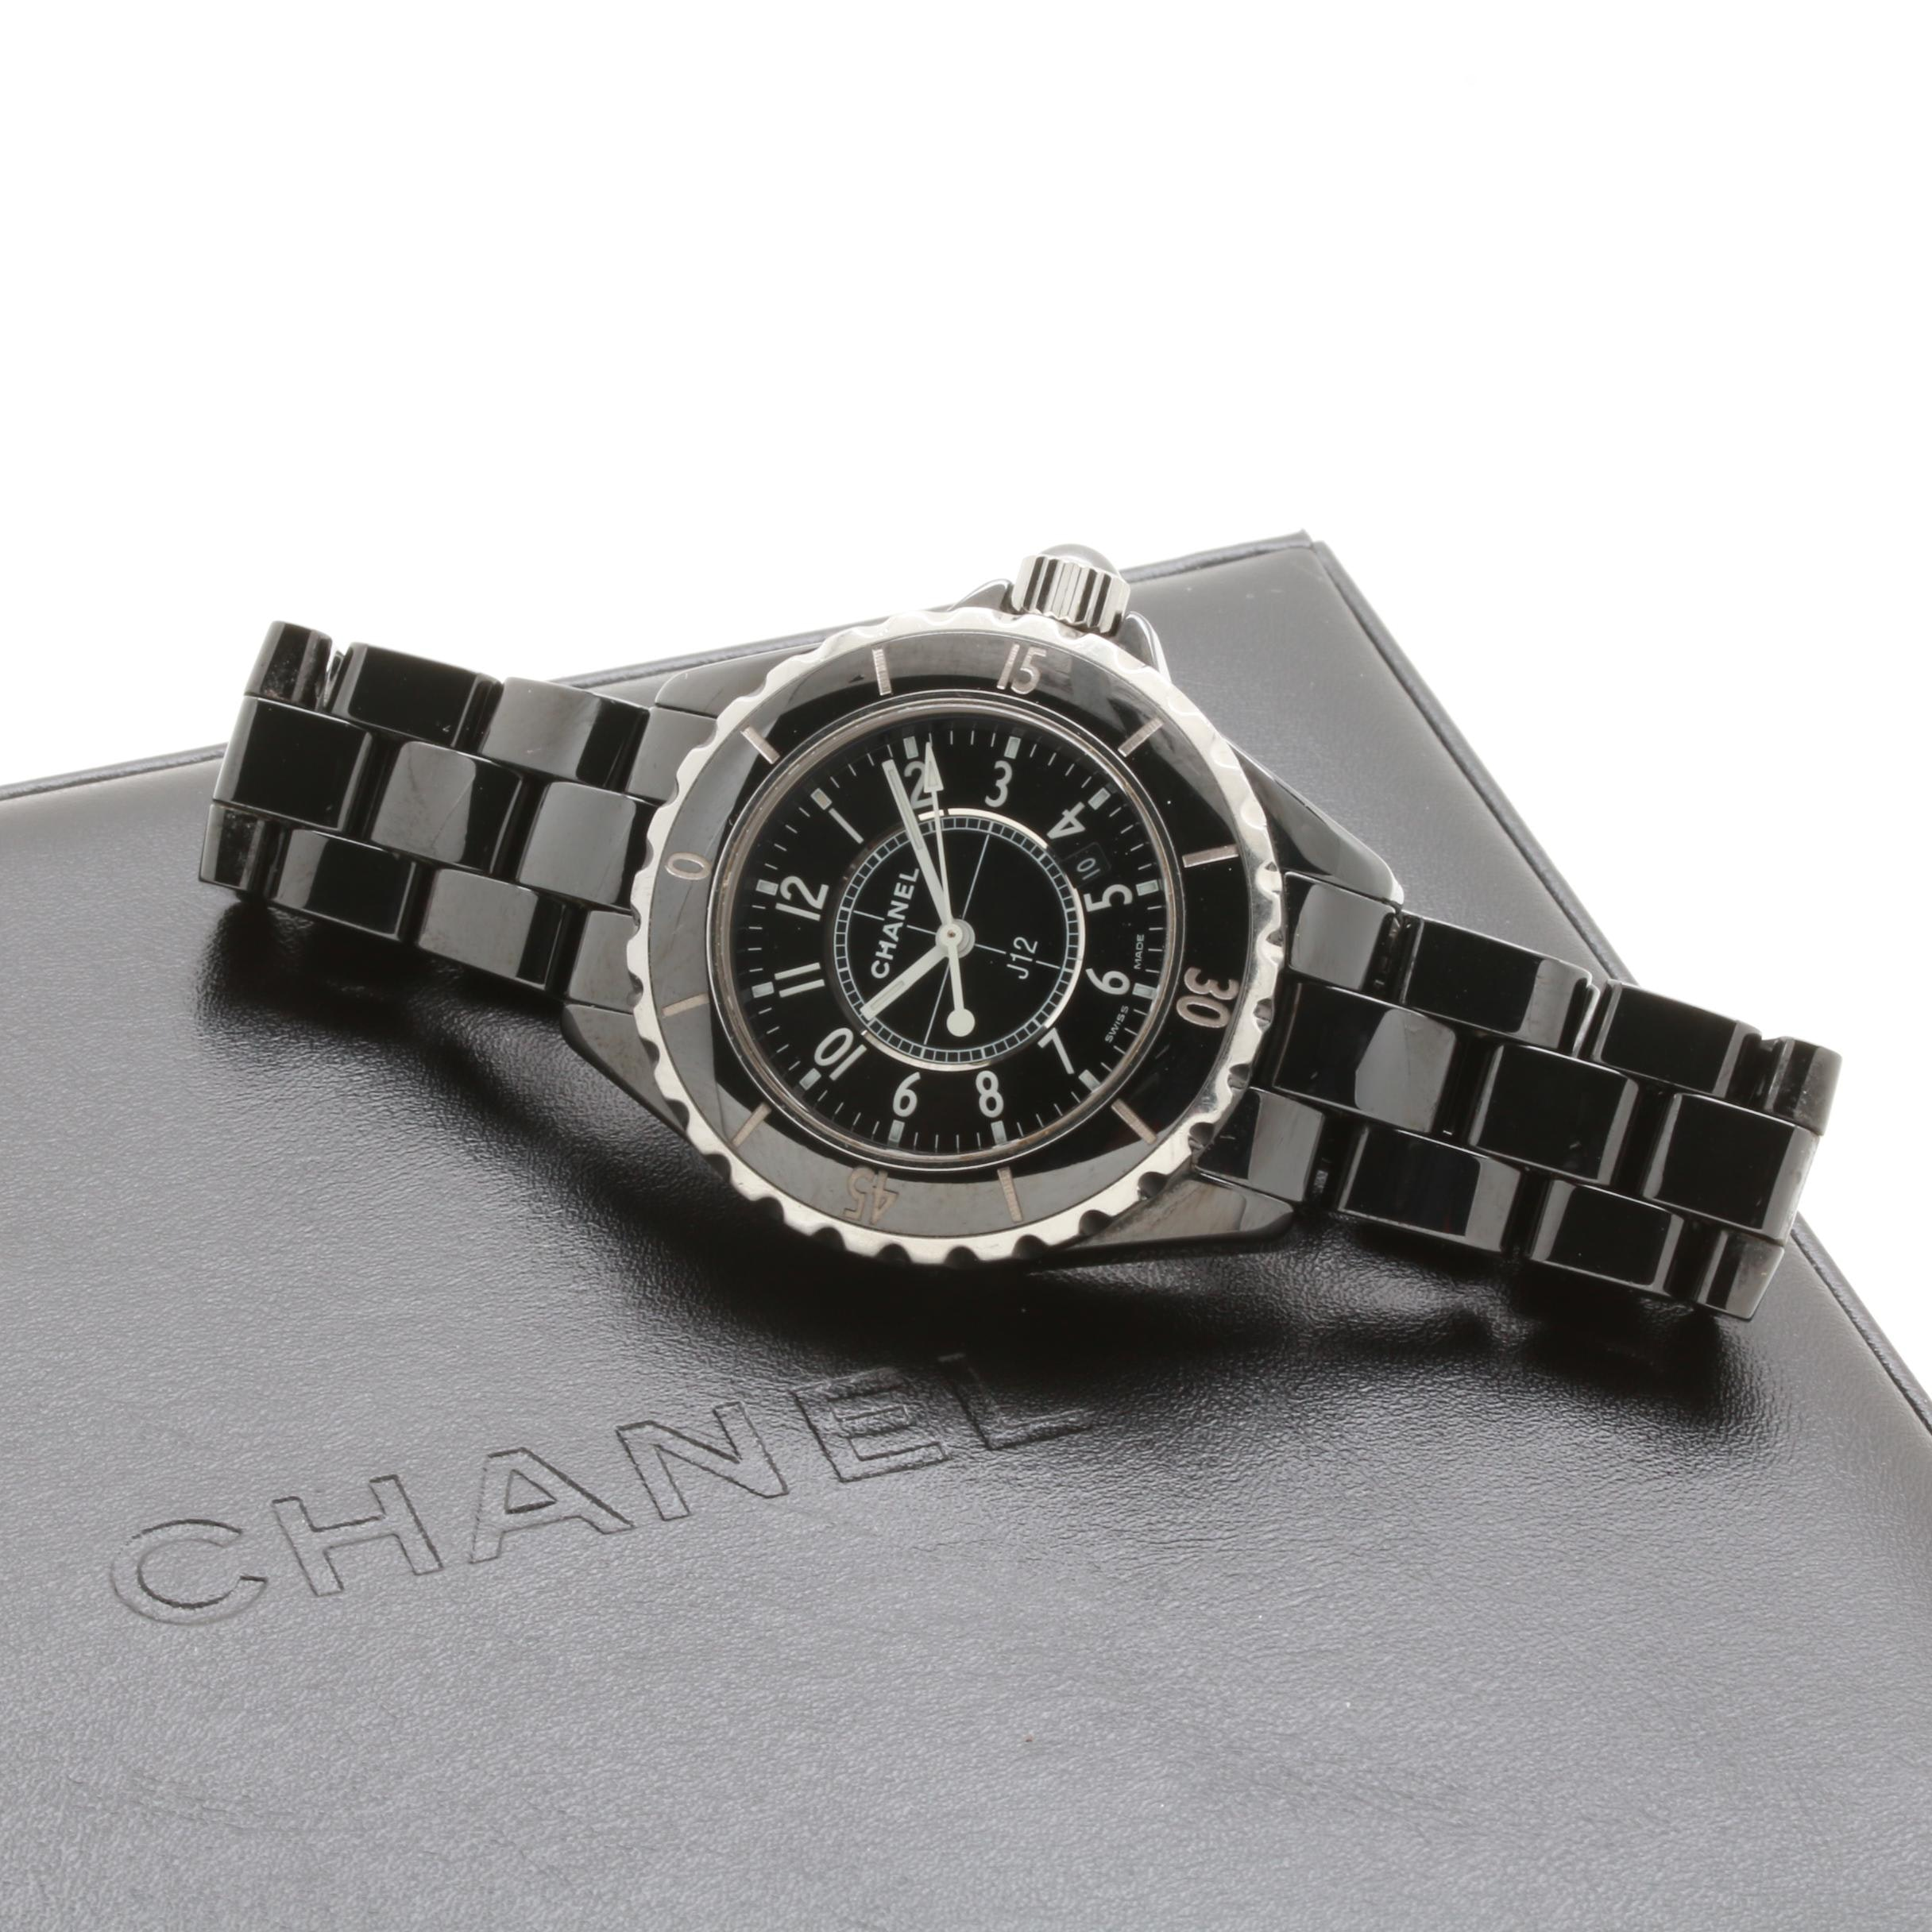 Chanel J12 Stainless Steel and Ceramic Wristwatch